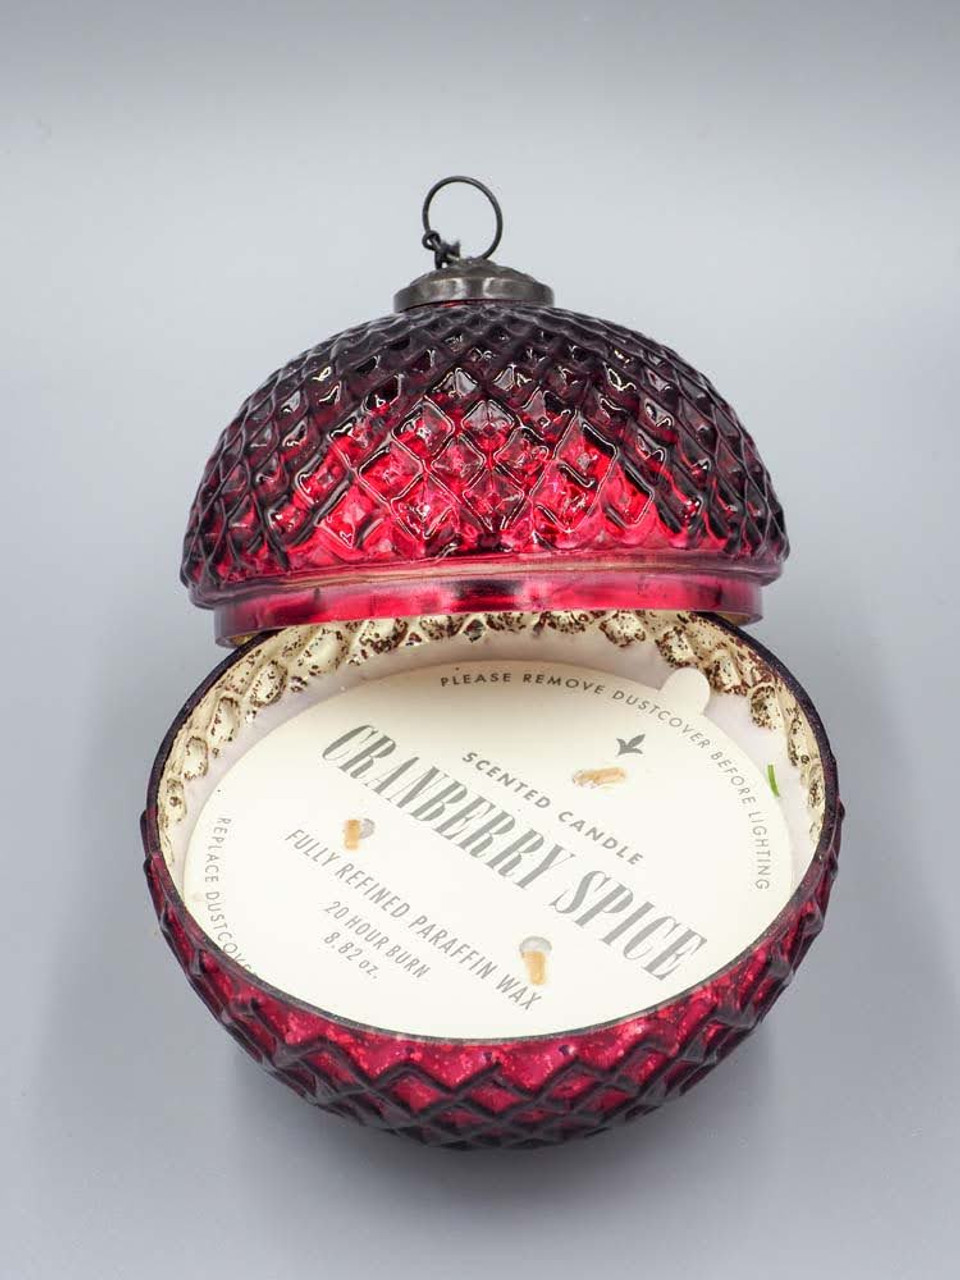 Cranberry Spice Red 5 Inch Ornament Candle